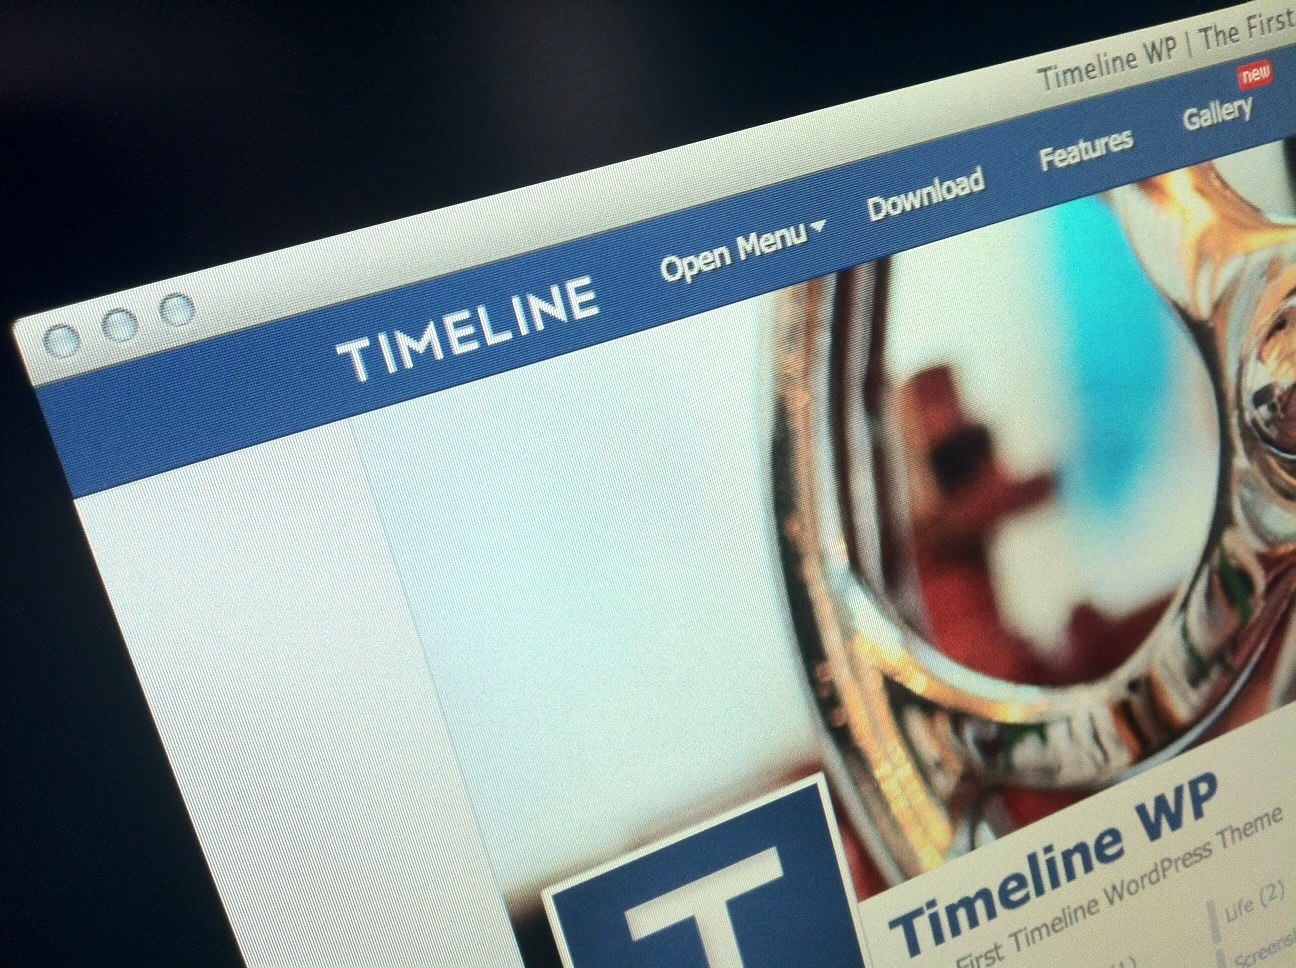 This WordPress theme is a slick way to turn your blog into Facebook's Timeline